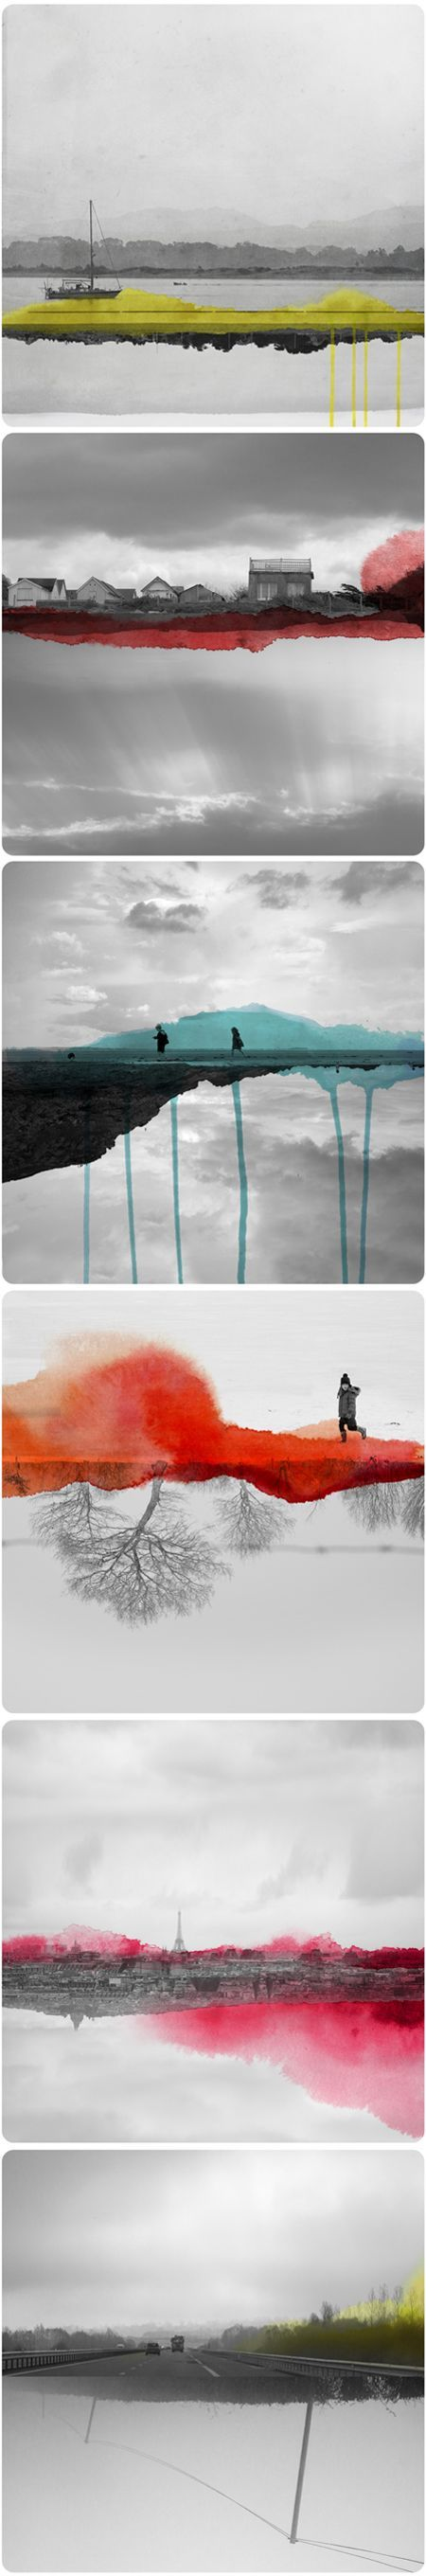 """Miroir"" series {mirrored photographs & watercolor paint} by Fabienne Rivory"